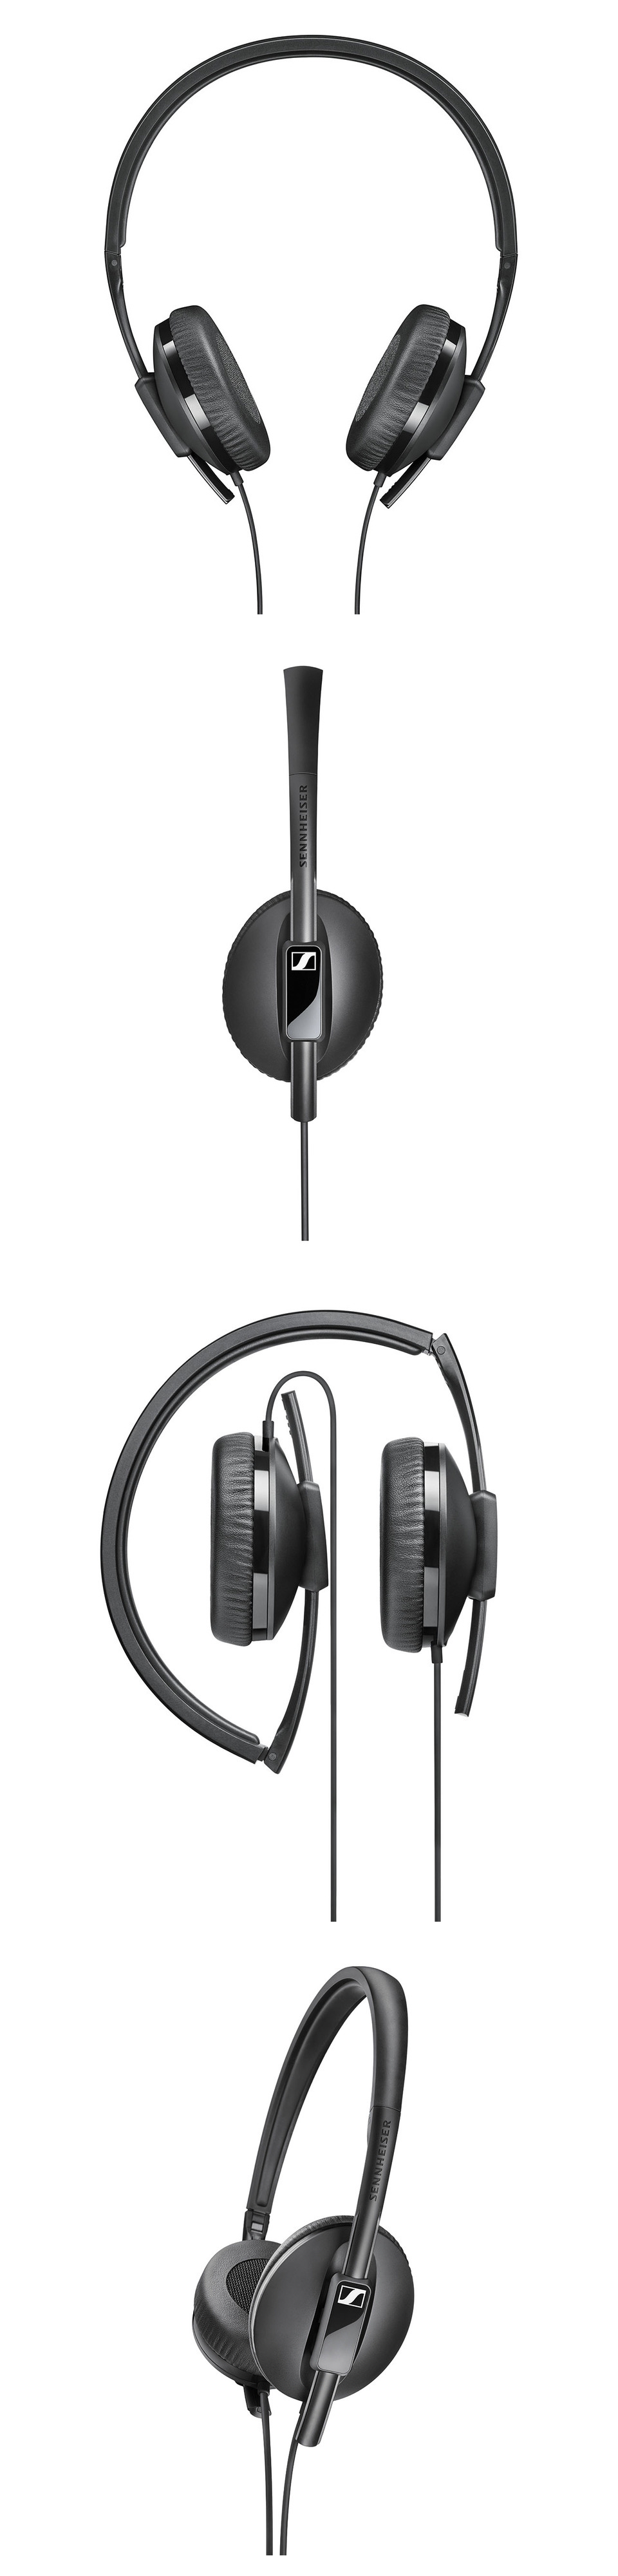 Sennheiser HD 100 On Ear Headphones product